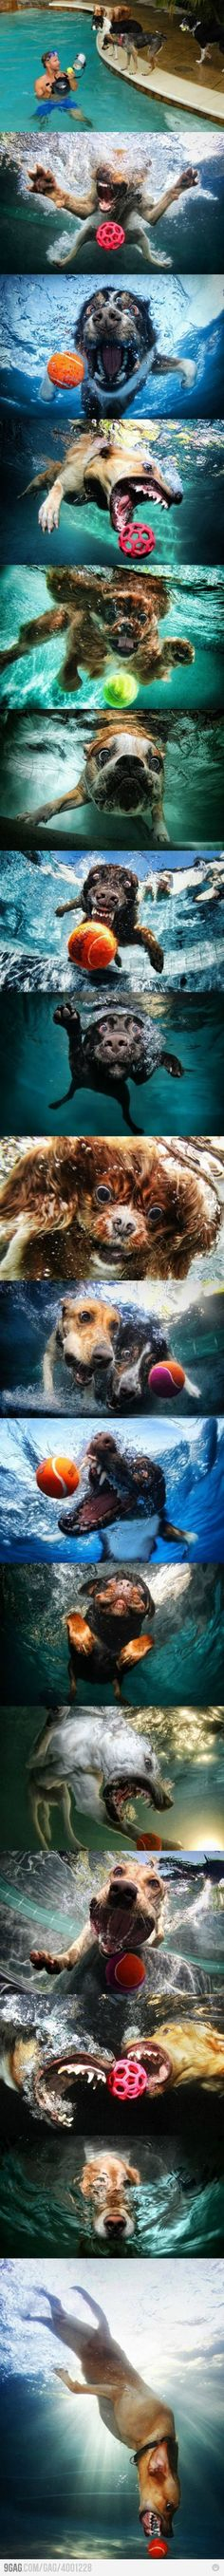 doggies in the water  =)